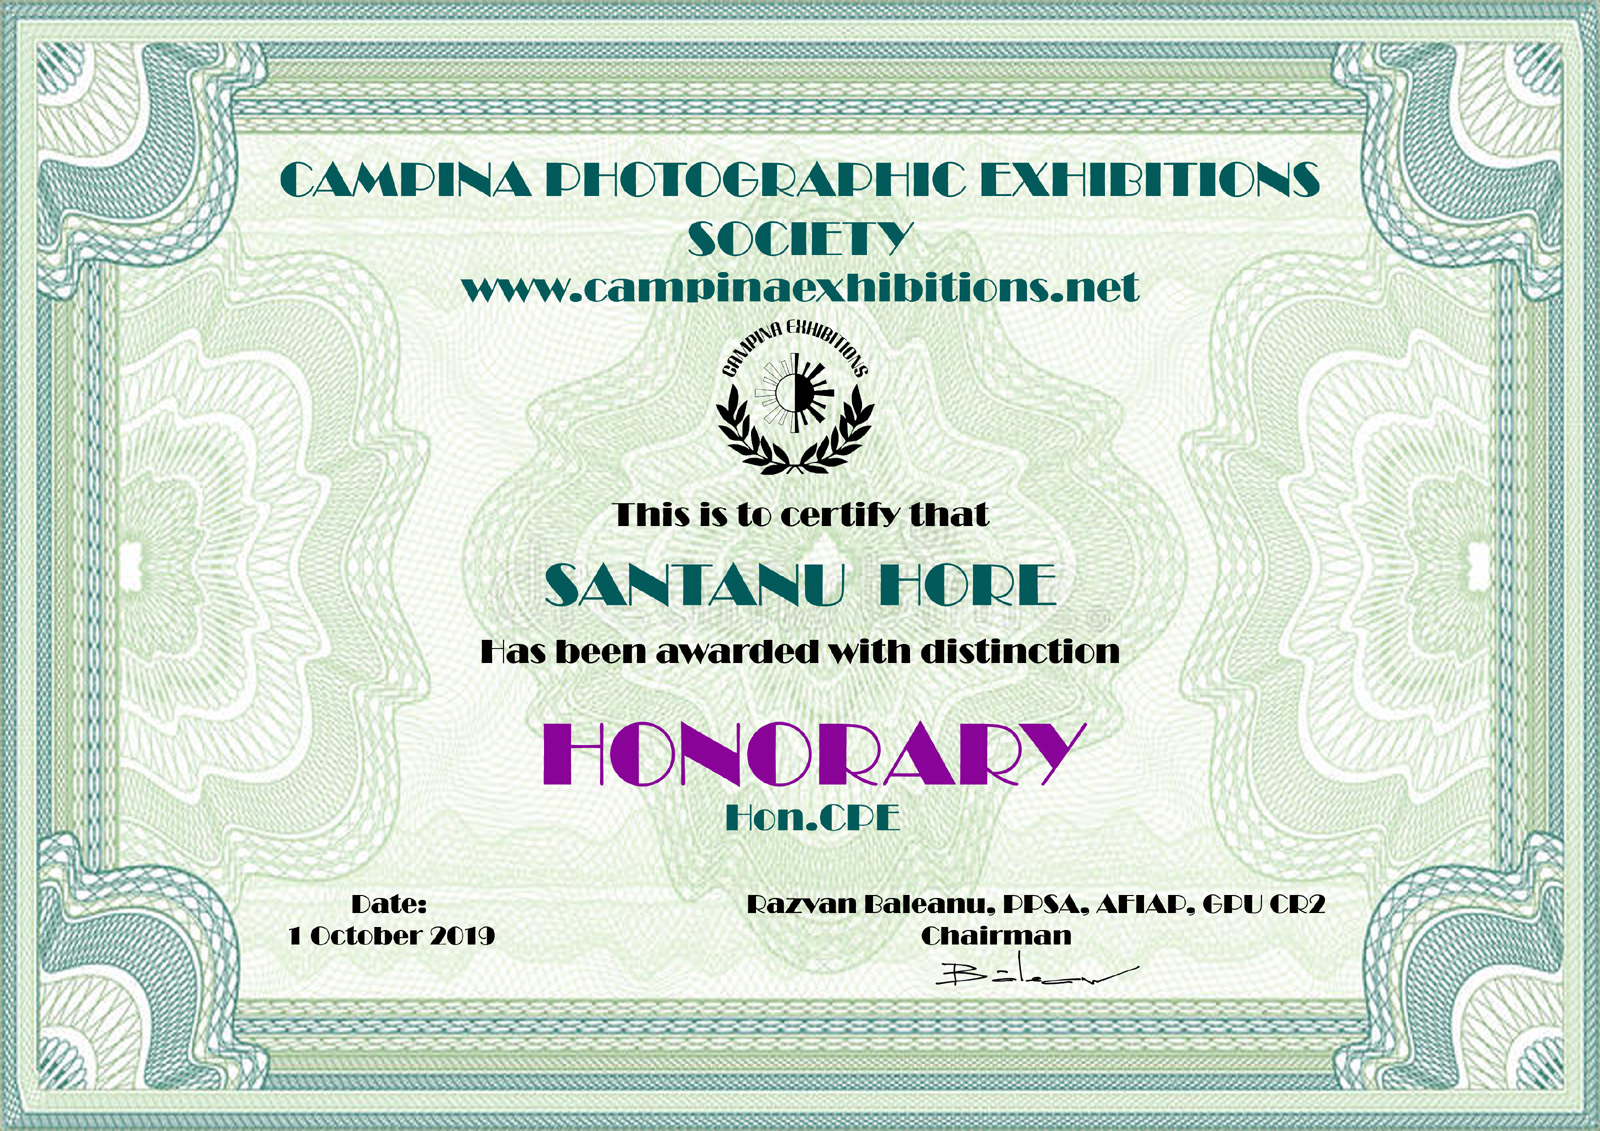 SANTANU HORE - HONORARY - Hon.CPE - Campina Photographic Exhibitions Society